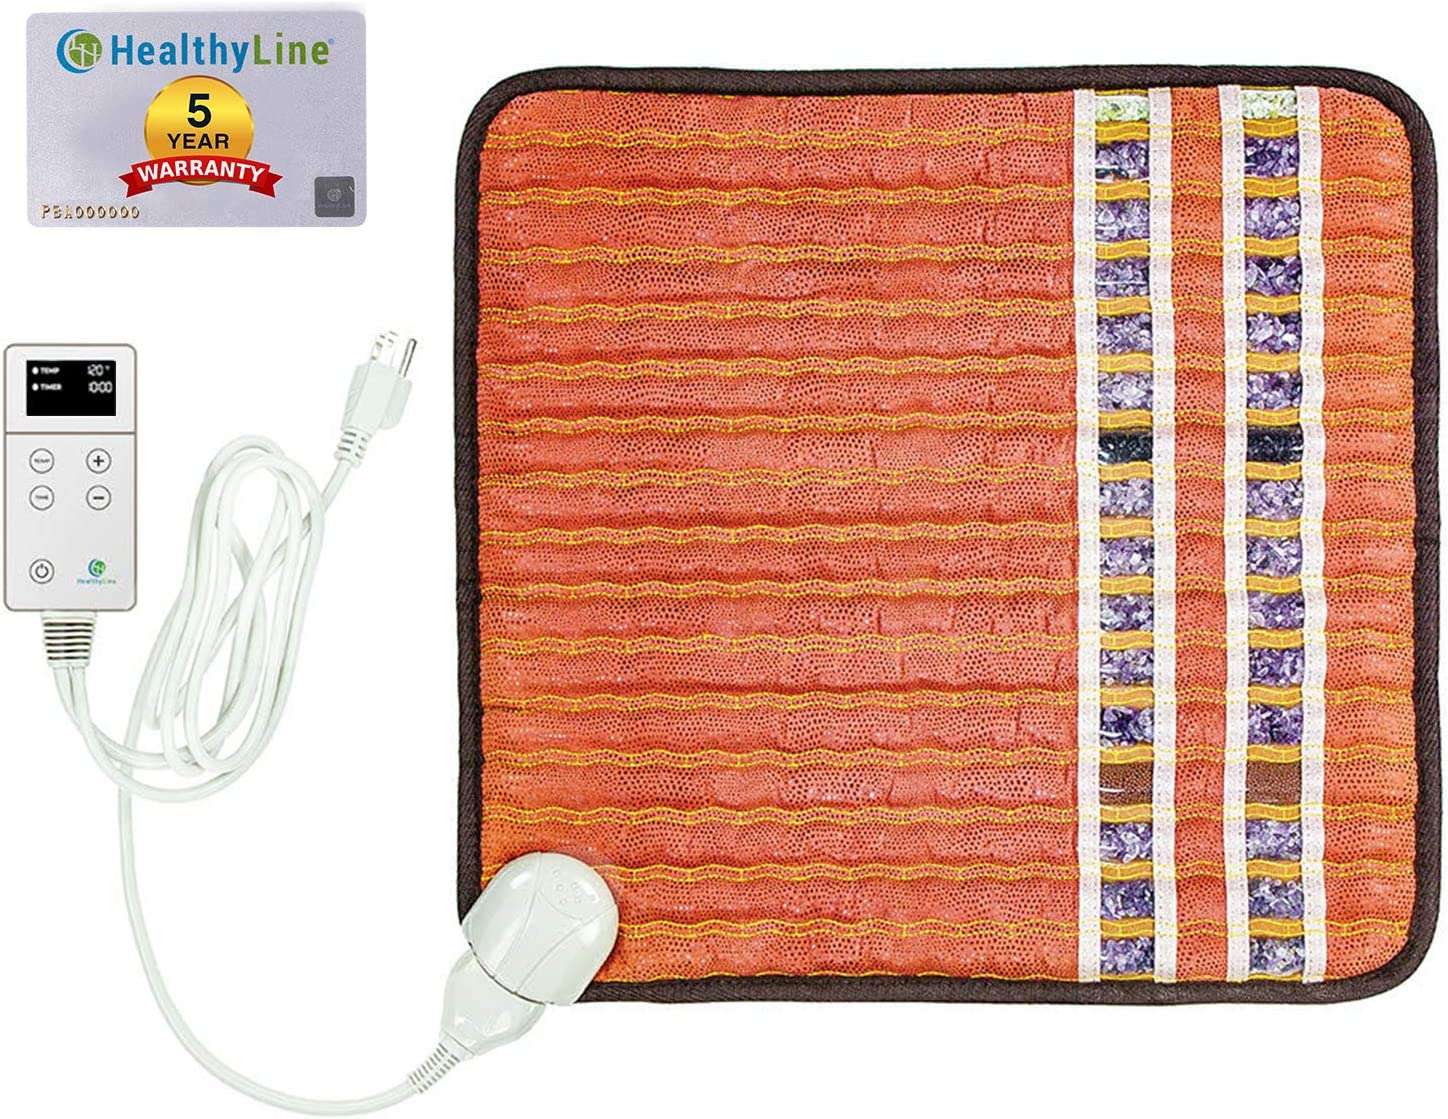 HealthyLine Far Infrared Small Heating Pad - Soft Mat Filled with Amethyst, Tourmaline and Obsidian Crystals - Negative Ion Therapy, EMF Blocking, Pain Relief - TAO Inframat Pro: Health & Personal Care